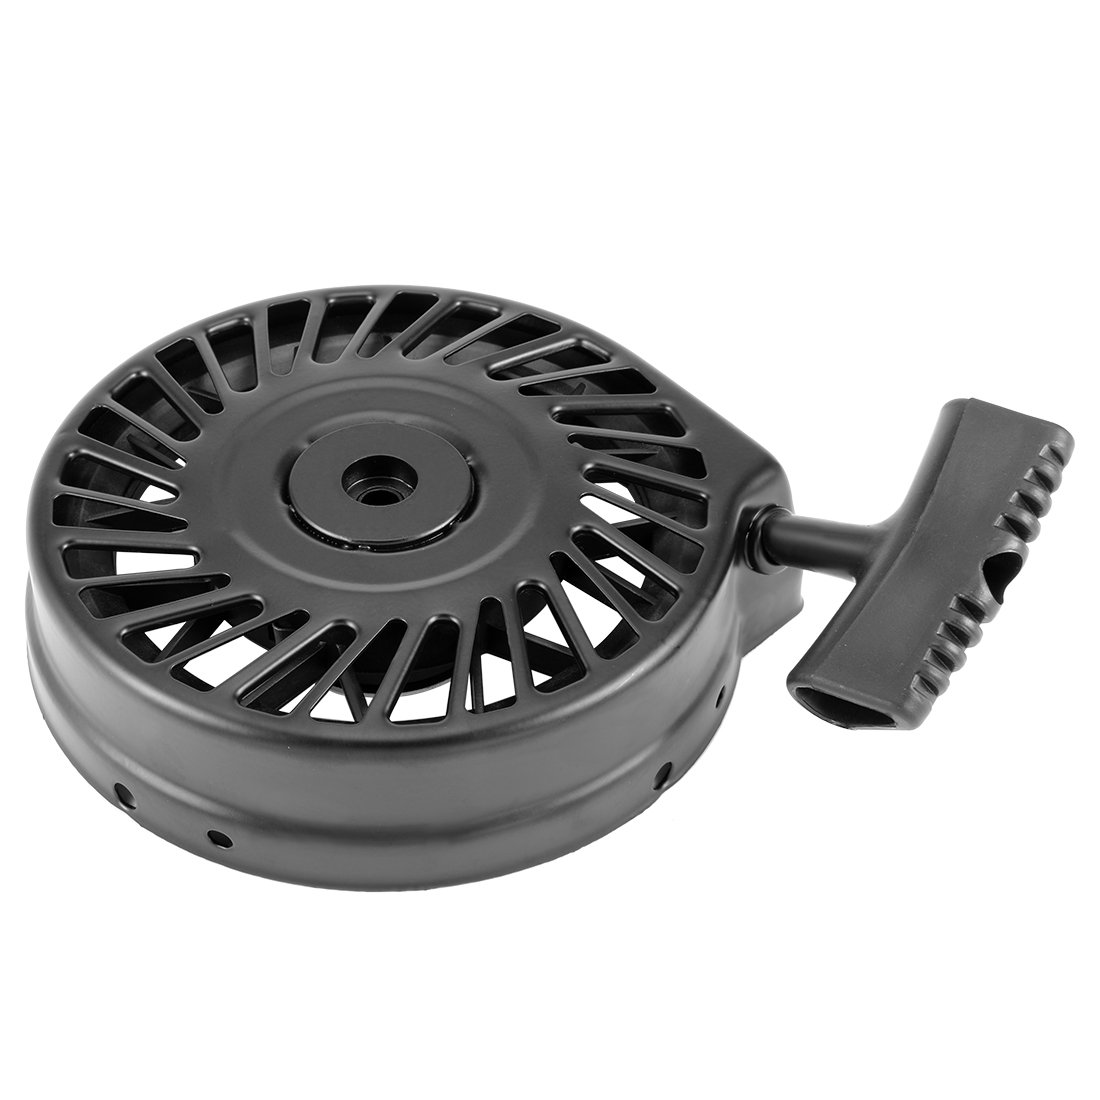 uxcell 590739 Recoil Pull Starter for Tecumseh 590702 590637 Replacement LV195EA LEV80 LEV115 LEV120